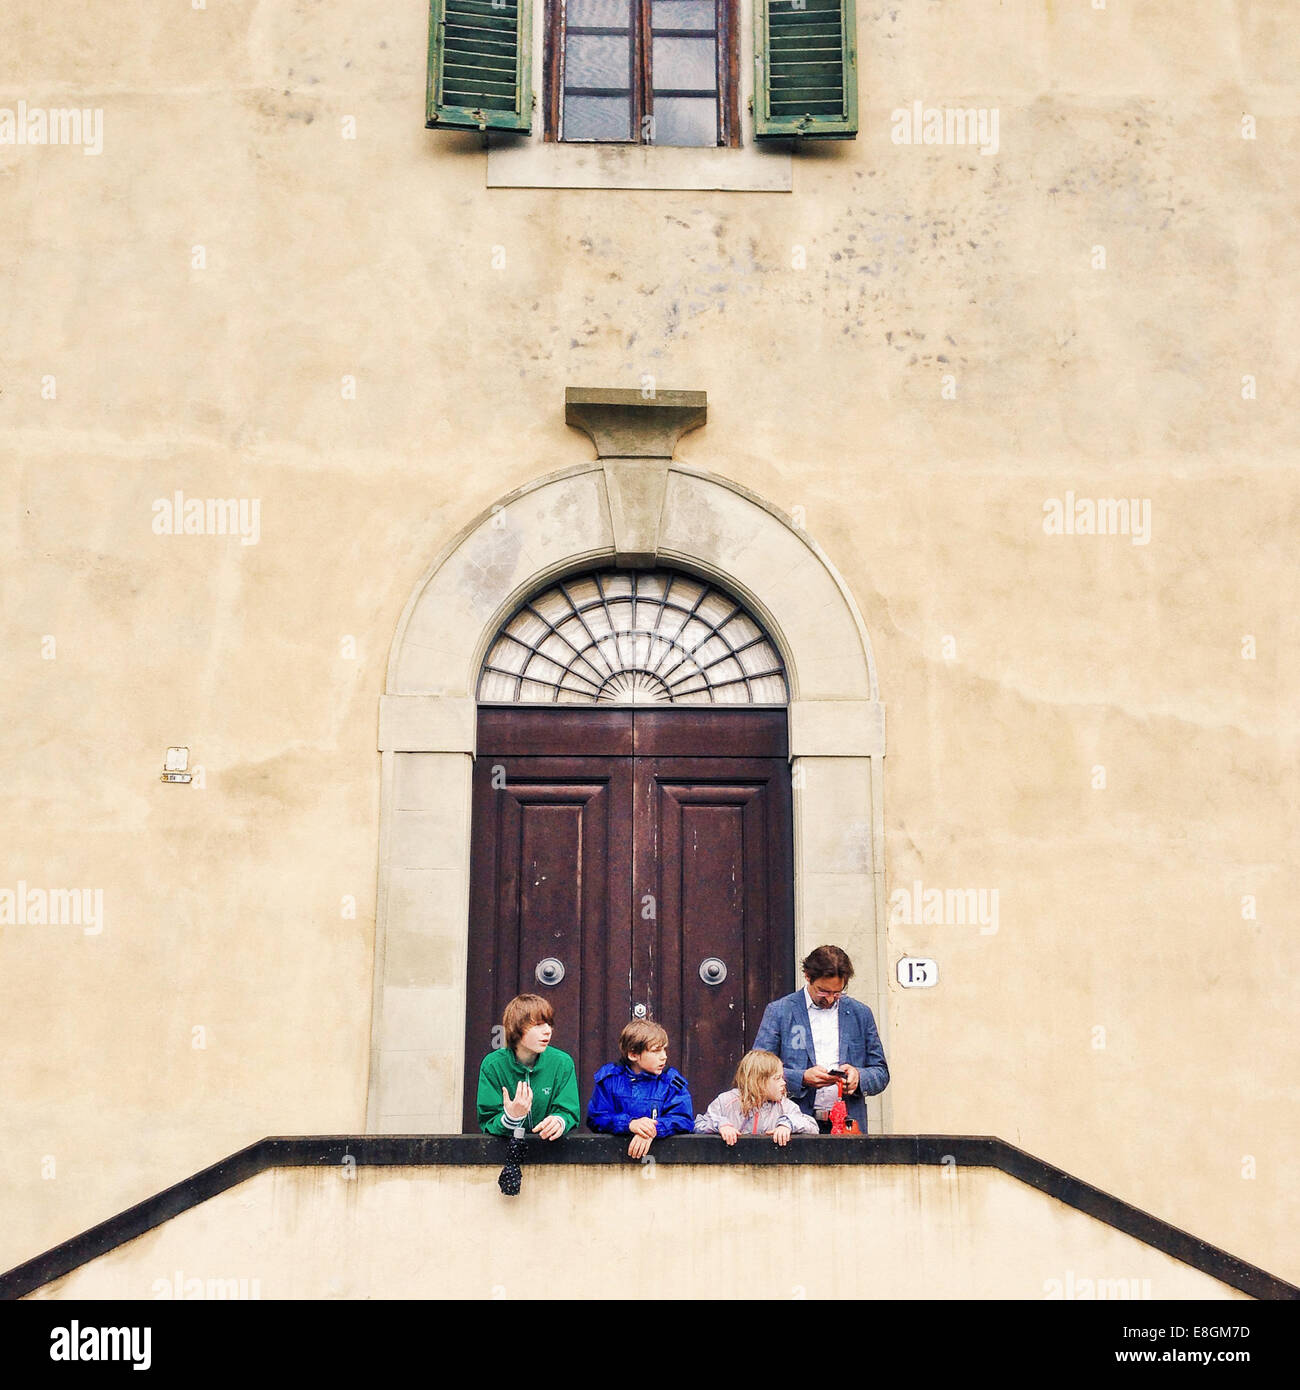 Italie, Florence, père de trois enfants (10-11, 12-13) standing in front of building Photo Stock